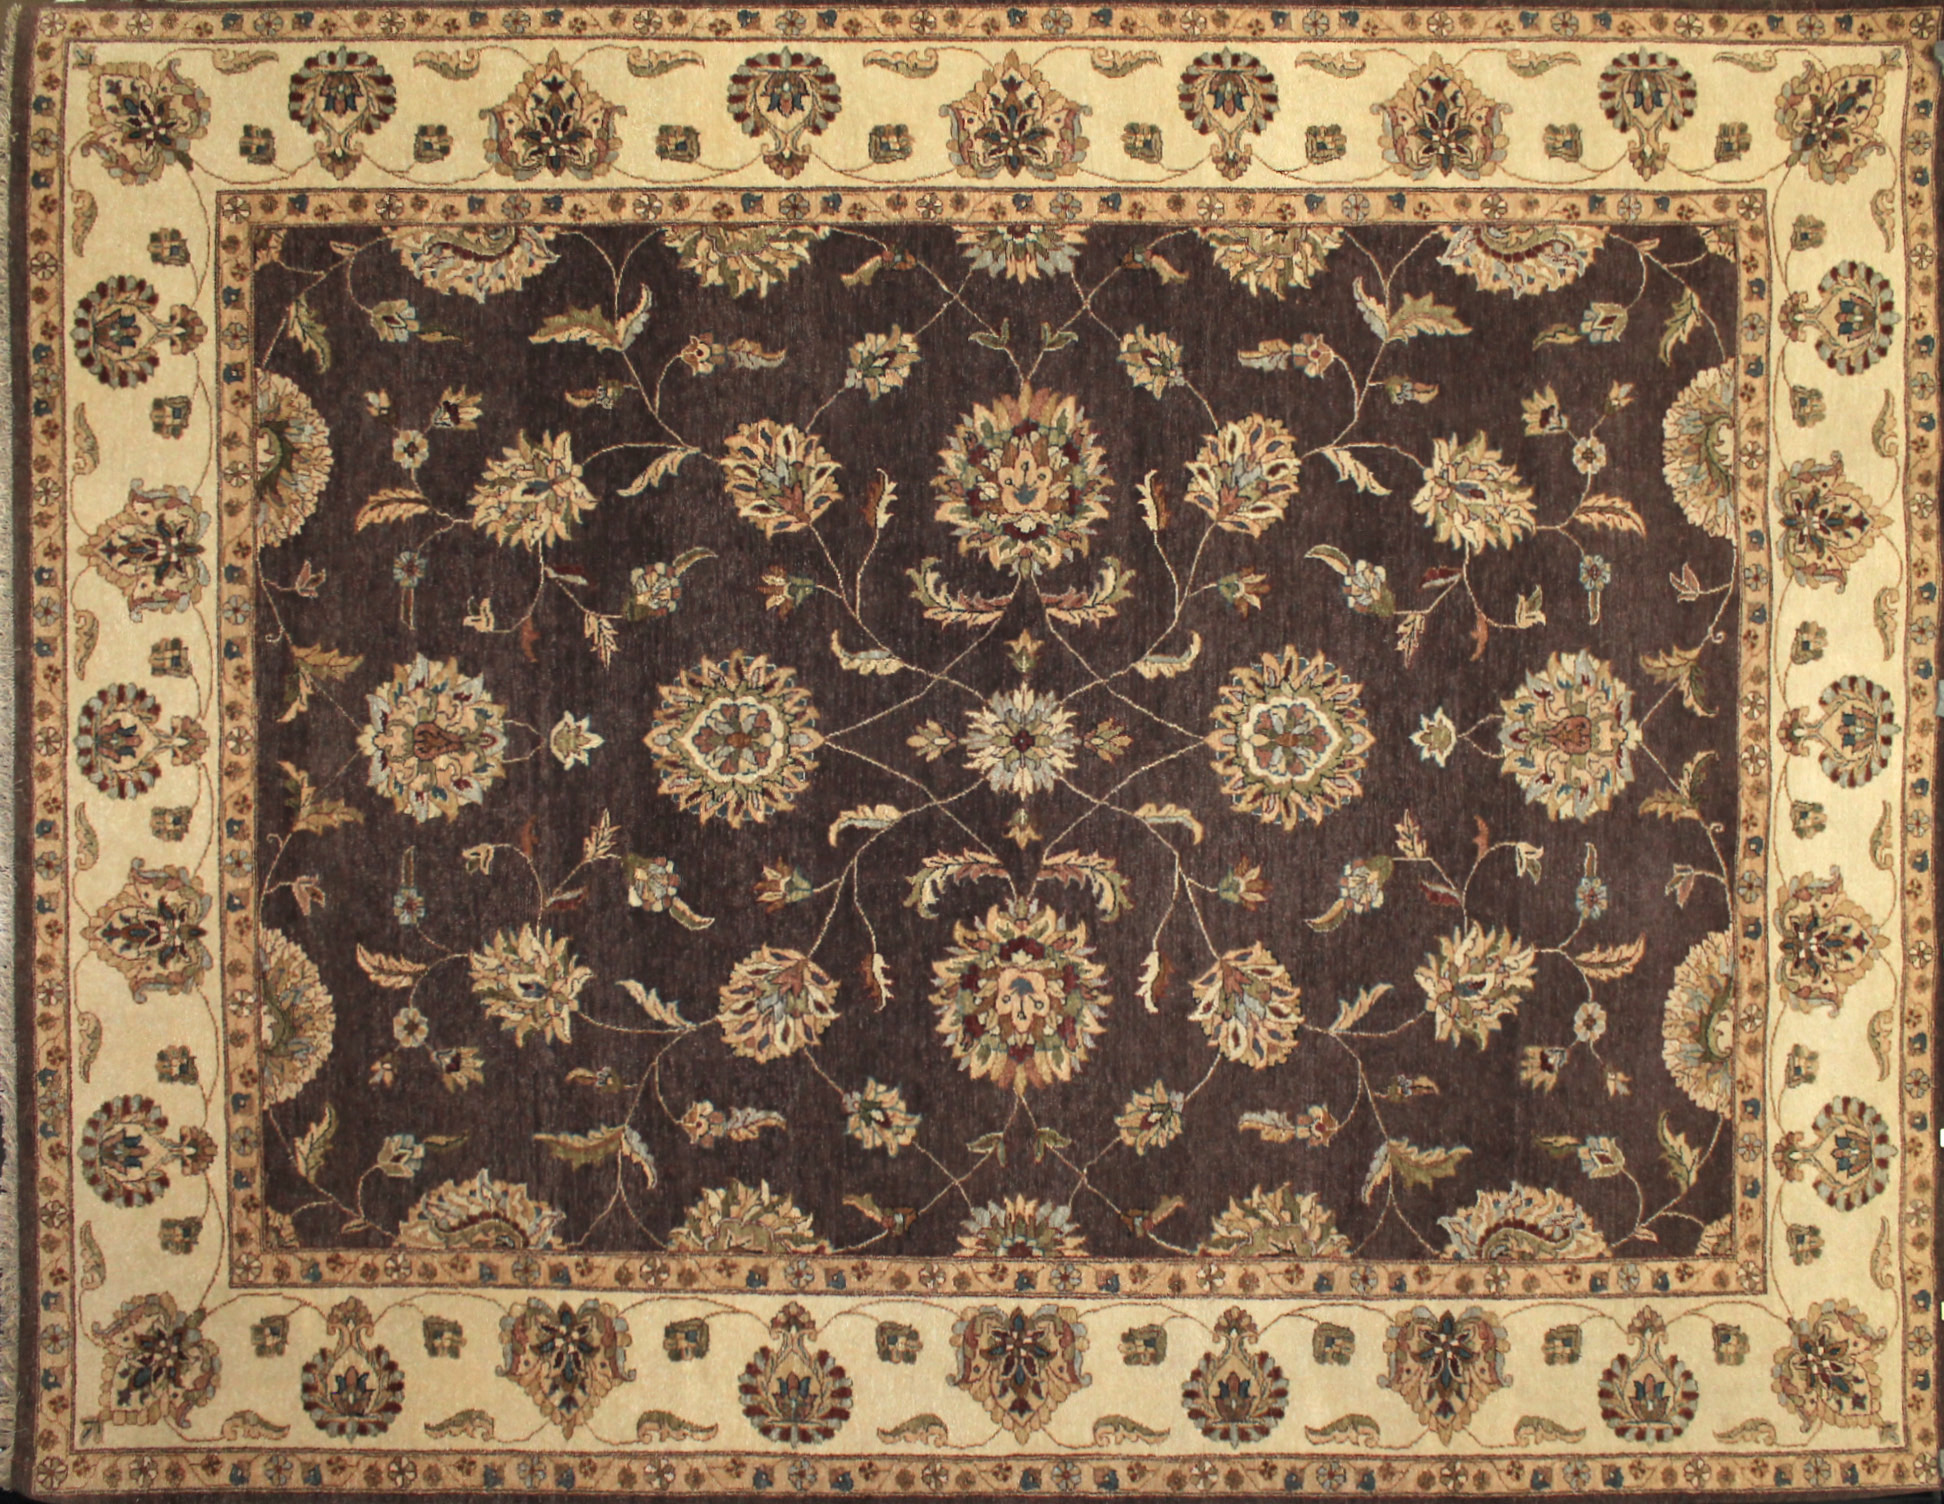 9x12 Traditional Hand Knotted Wool Area Rug - MR17482